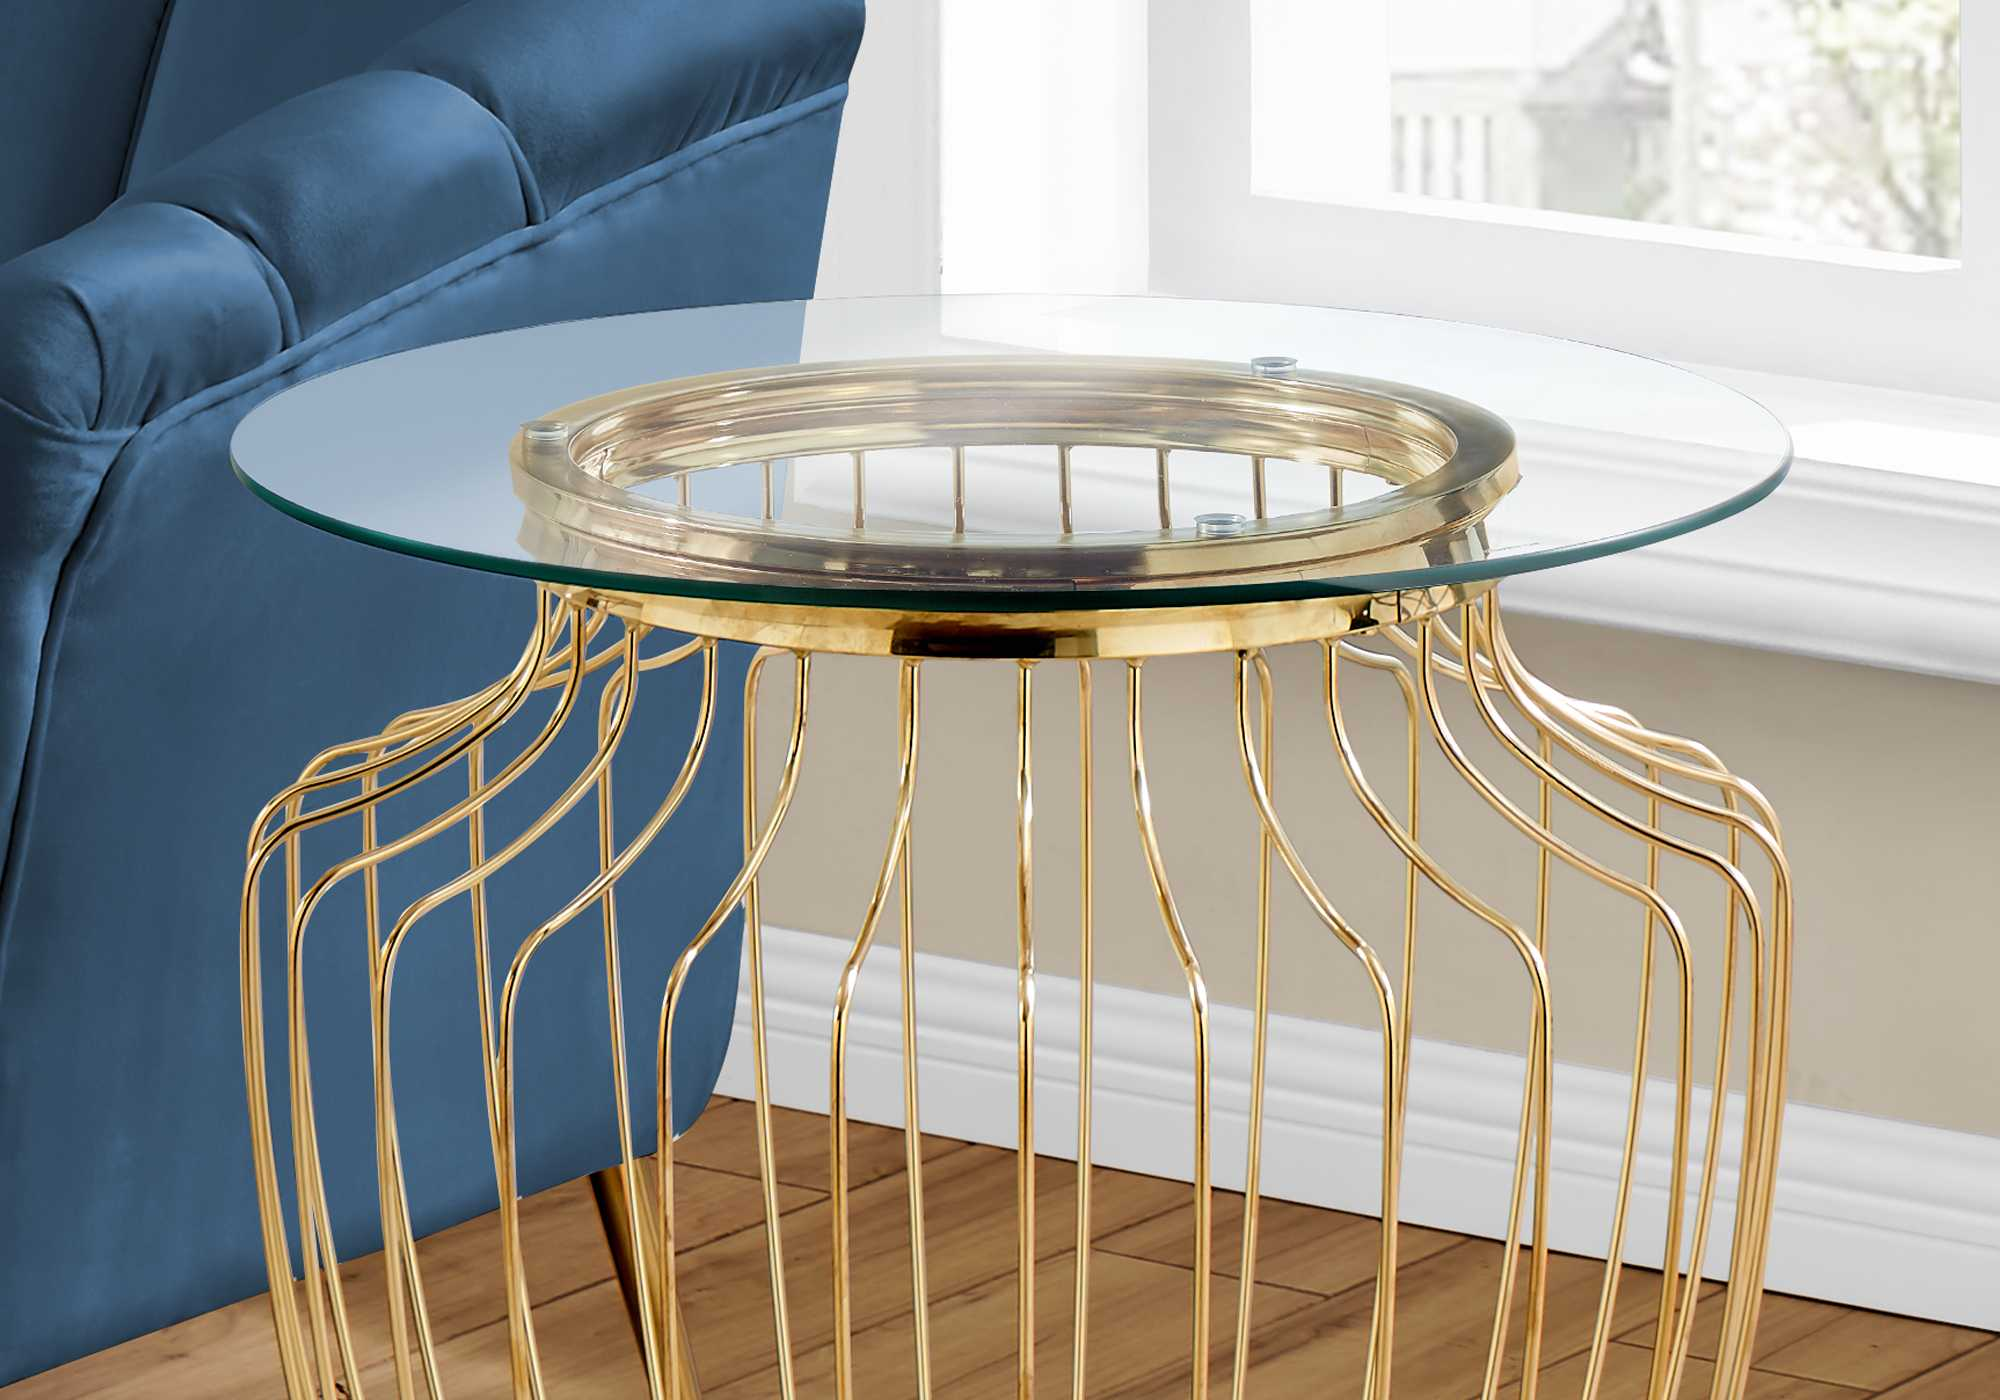 Write Me Gold Metal with Tempered Glass Accent Table HomeRoots